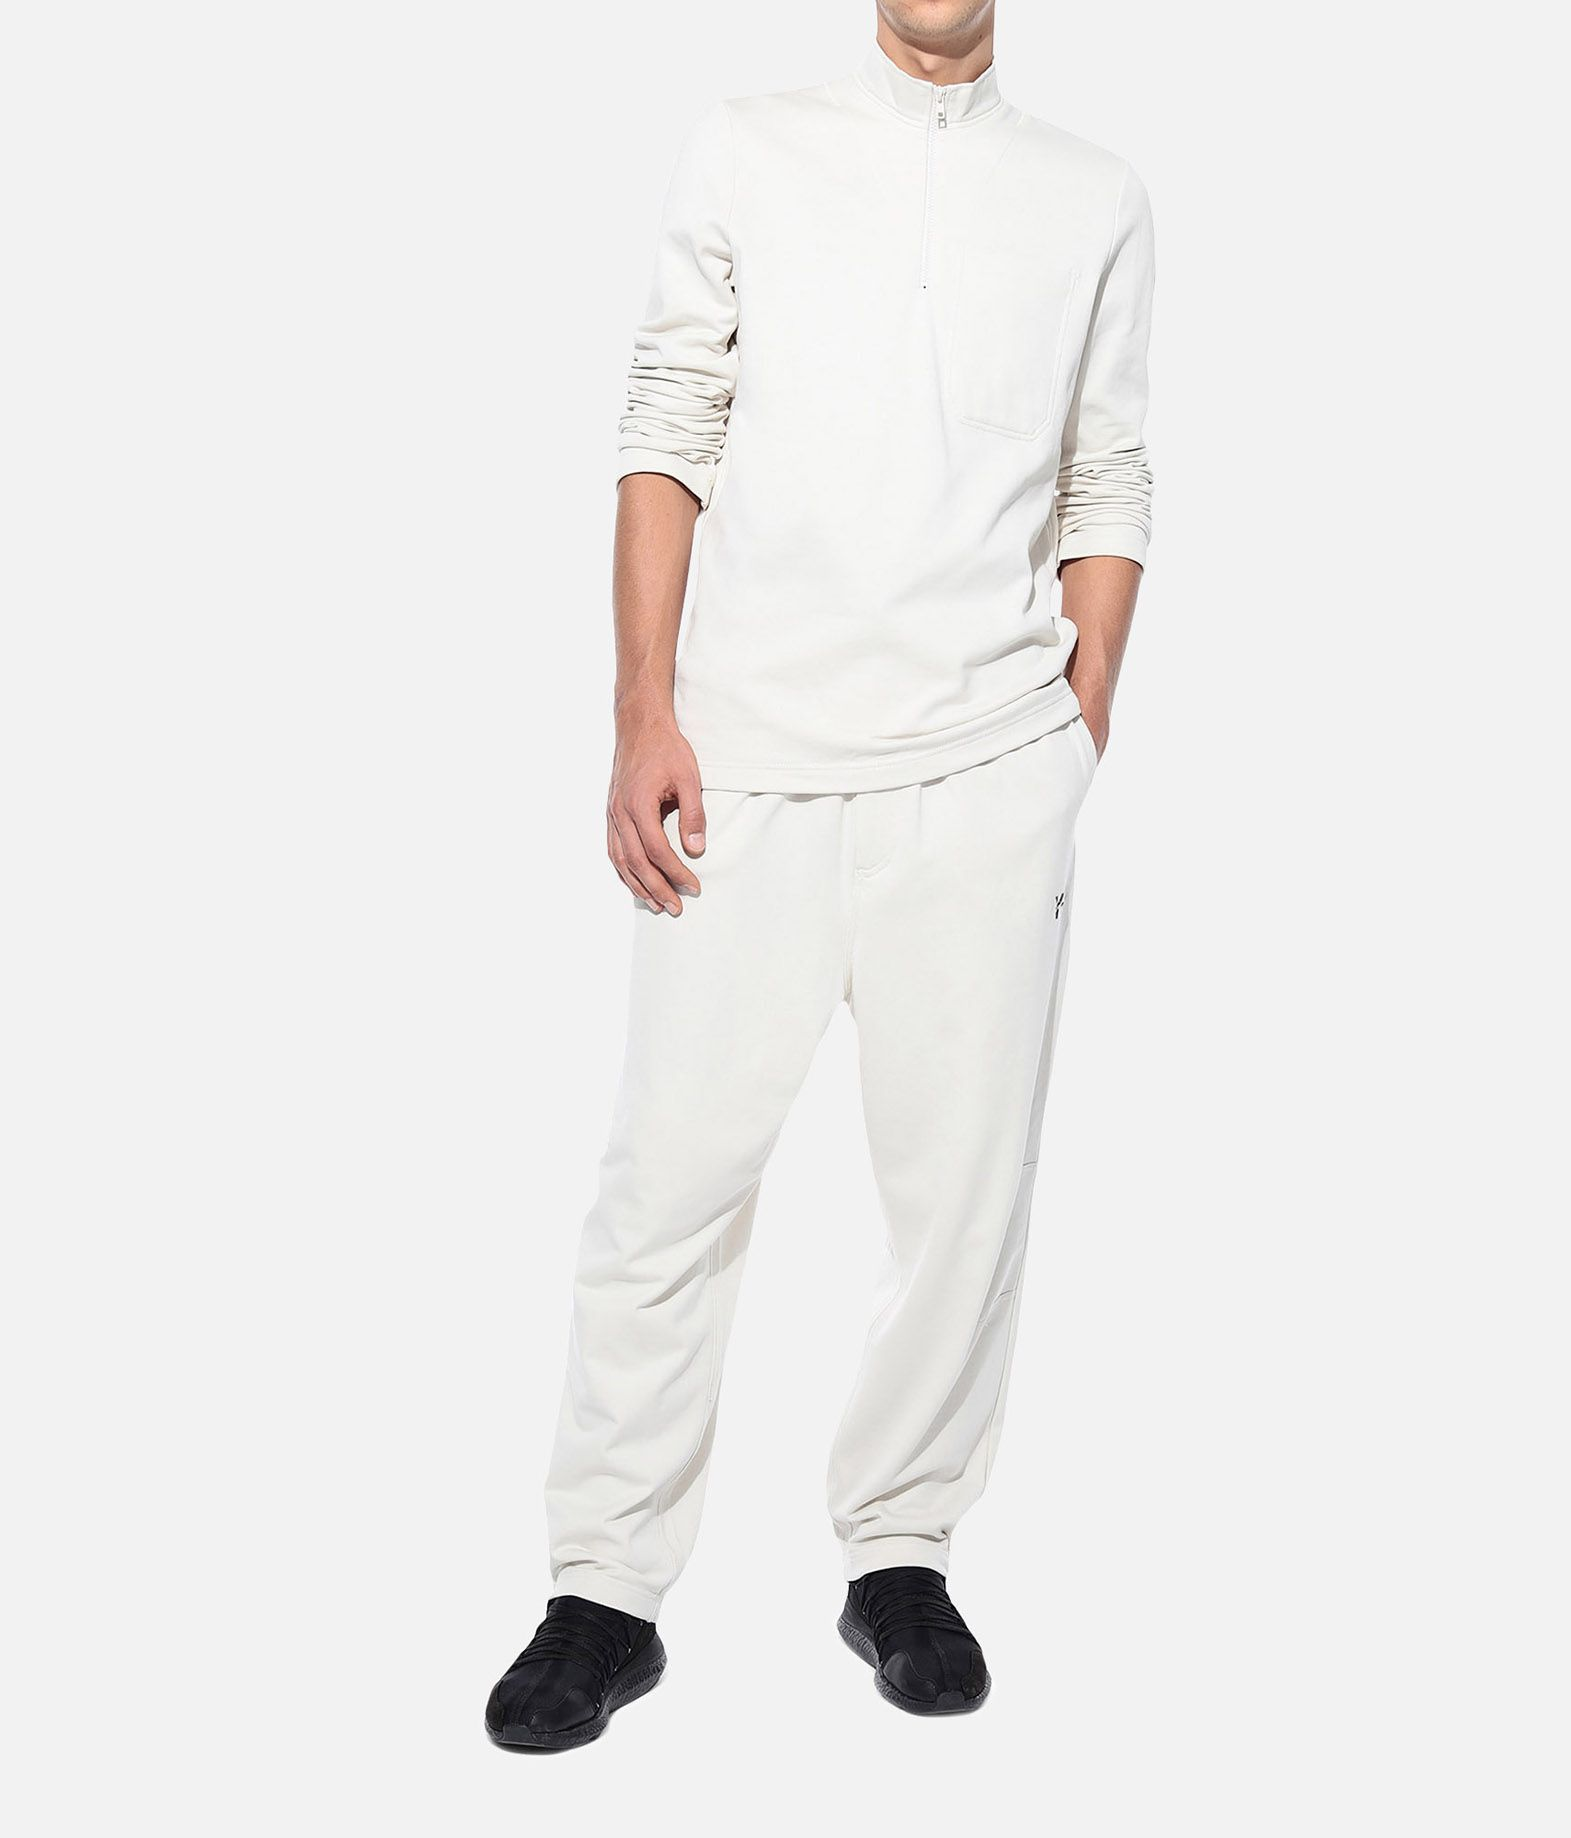 Y-3 Y-3 Sashiko Pants Sweatpants Man a